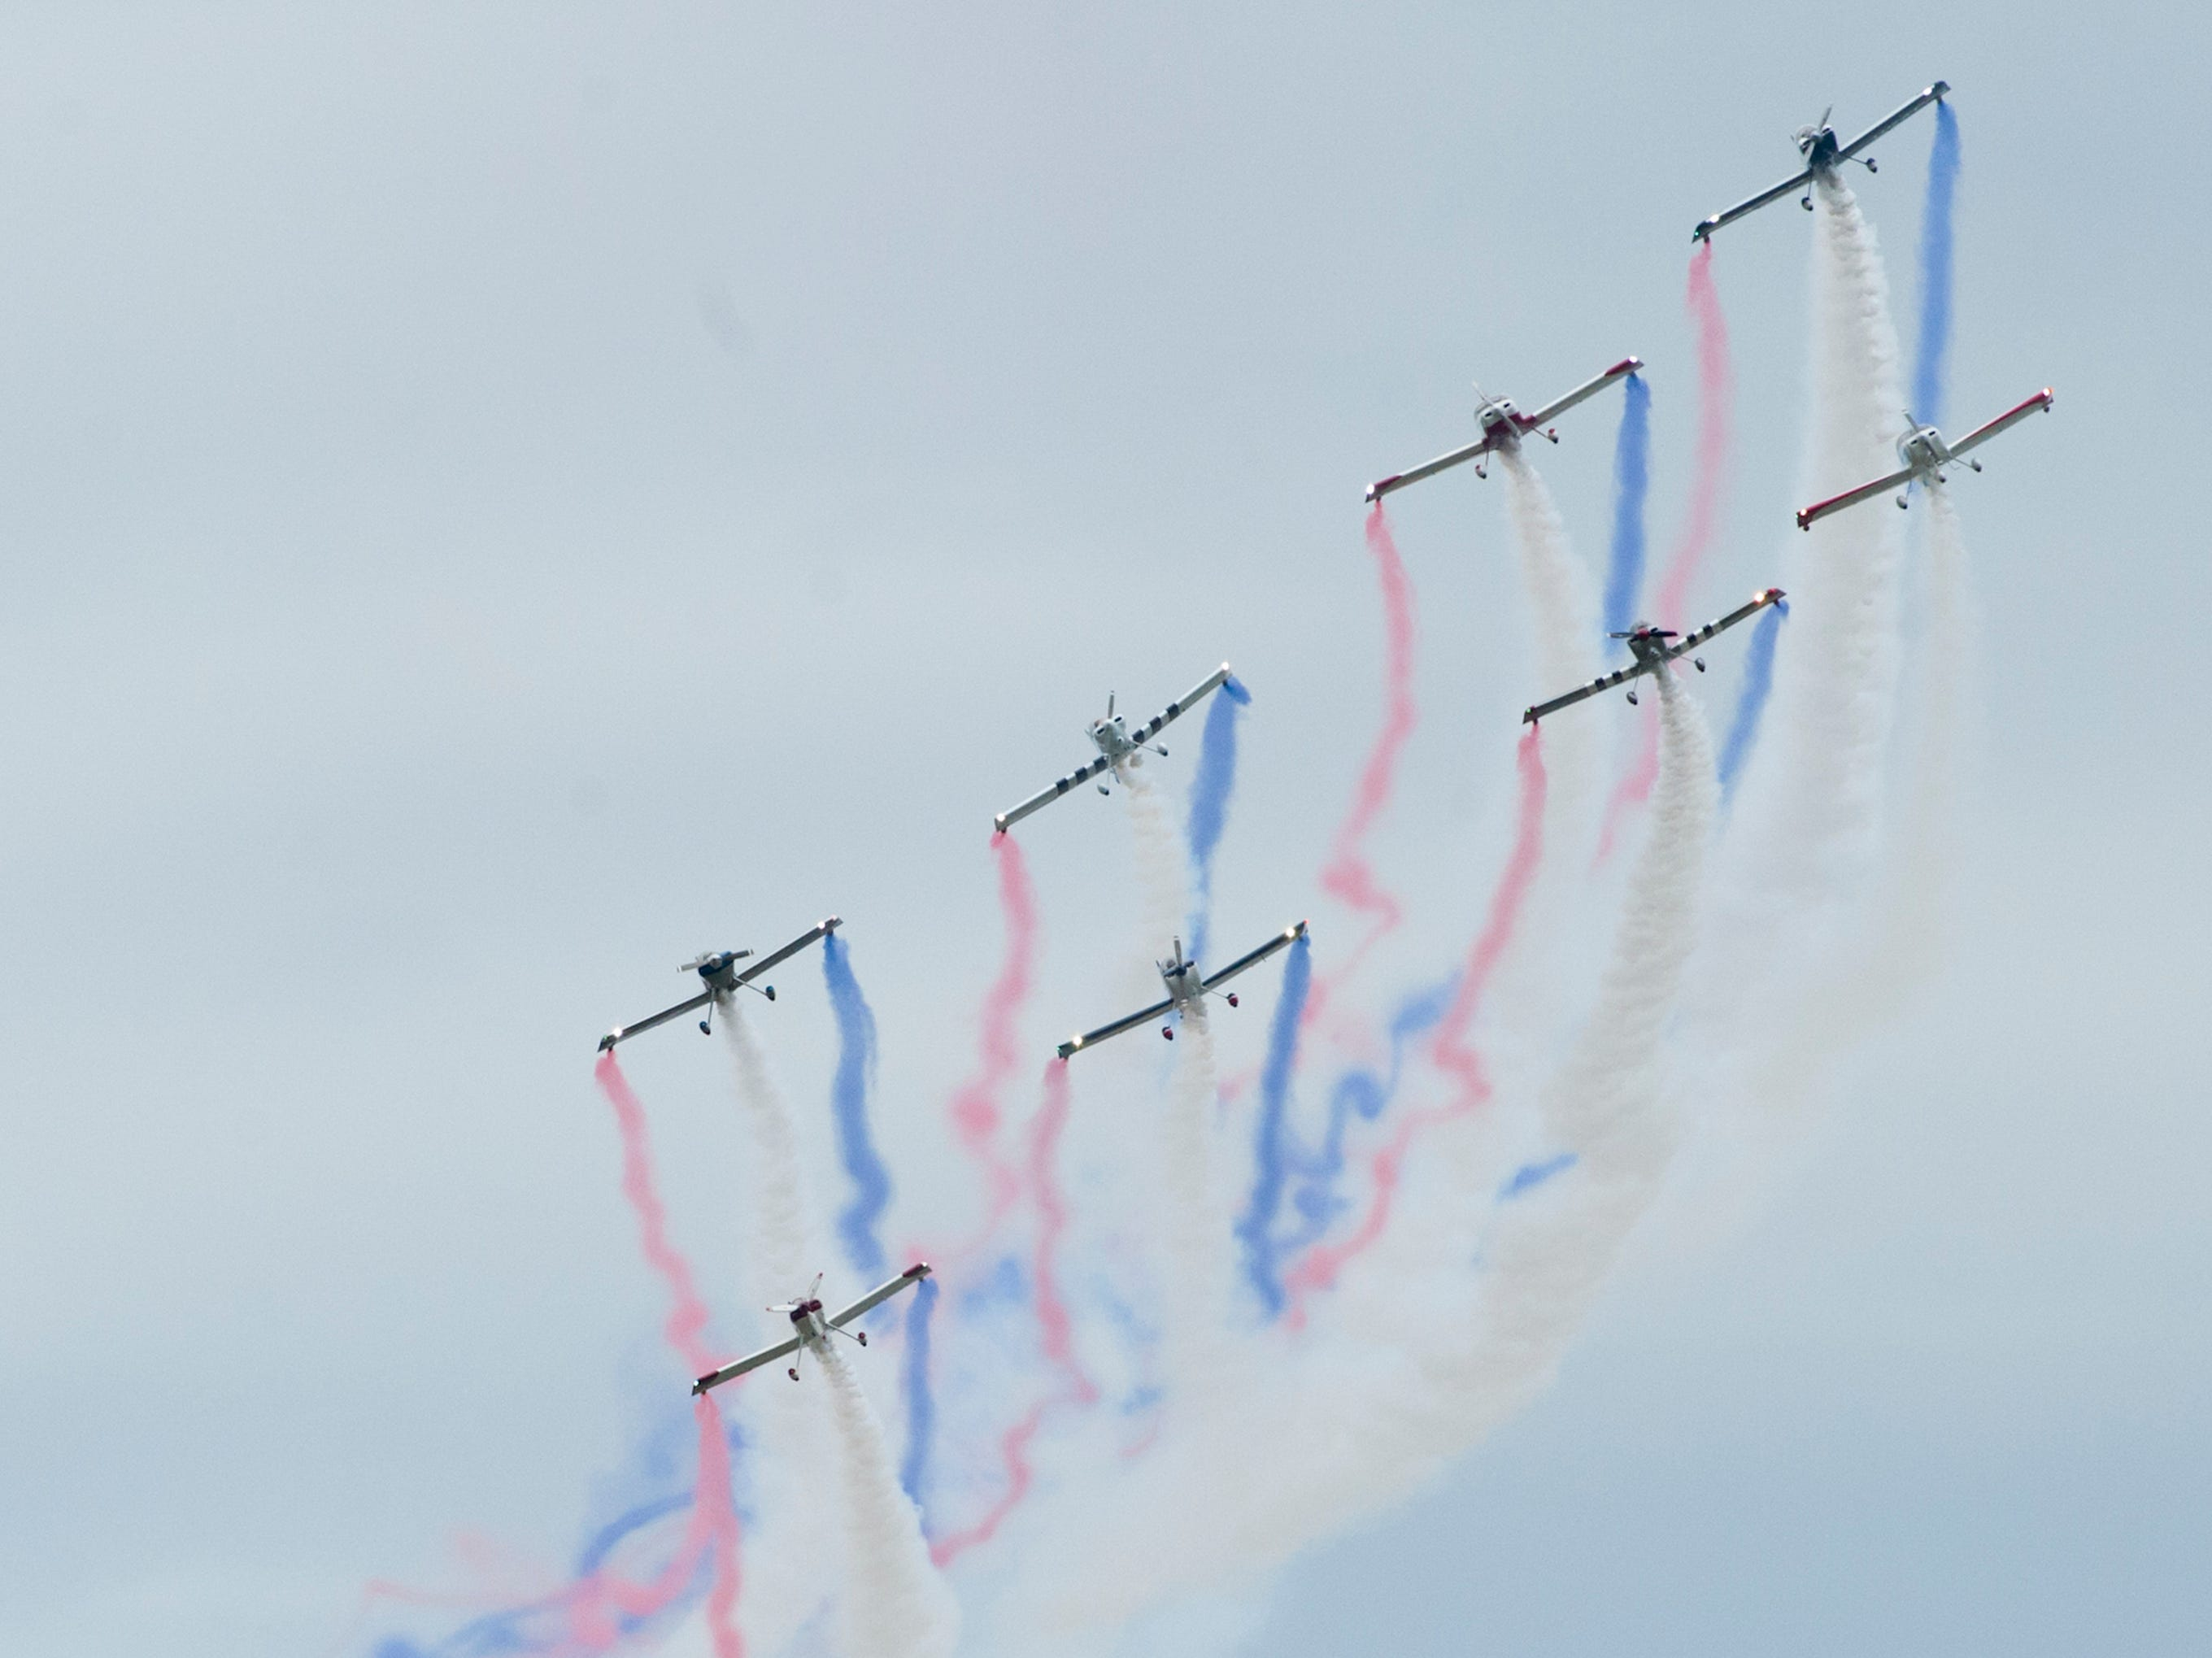 KC Flight, Kansas City's largest home grown civilian formation team, blows color smoke trails from their RV-4's at the 2019 Thunder Over Louisville Air Show.13 April 2019